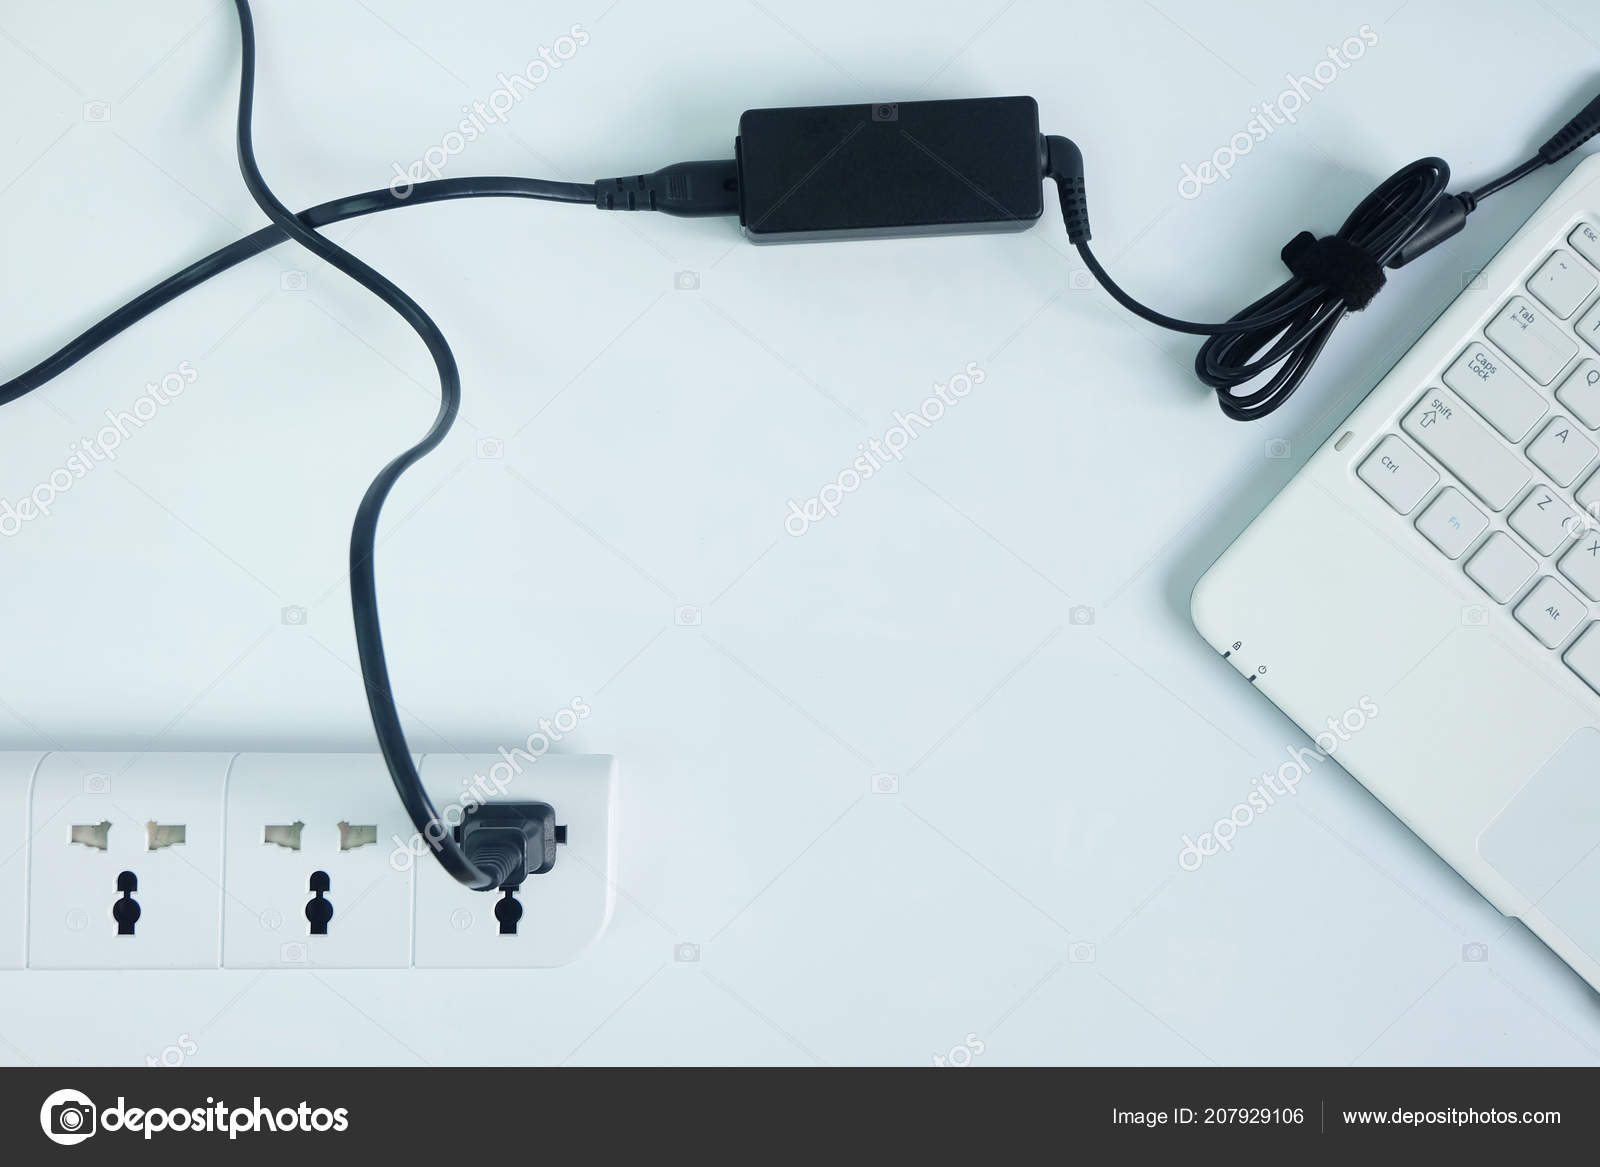 hight resolution of plug adapter power cord charger laptop computer white background topview stock photo